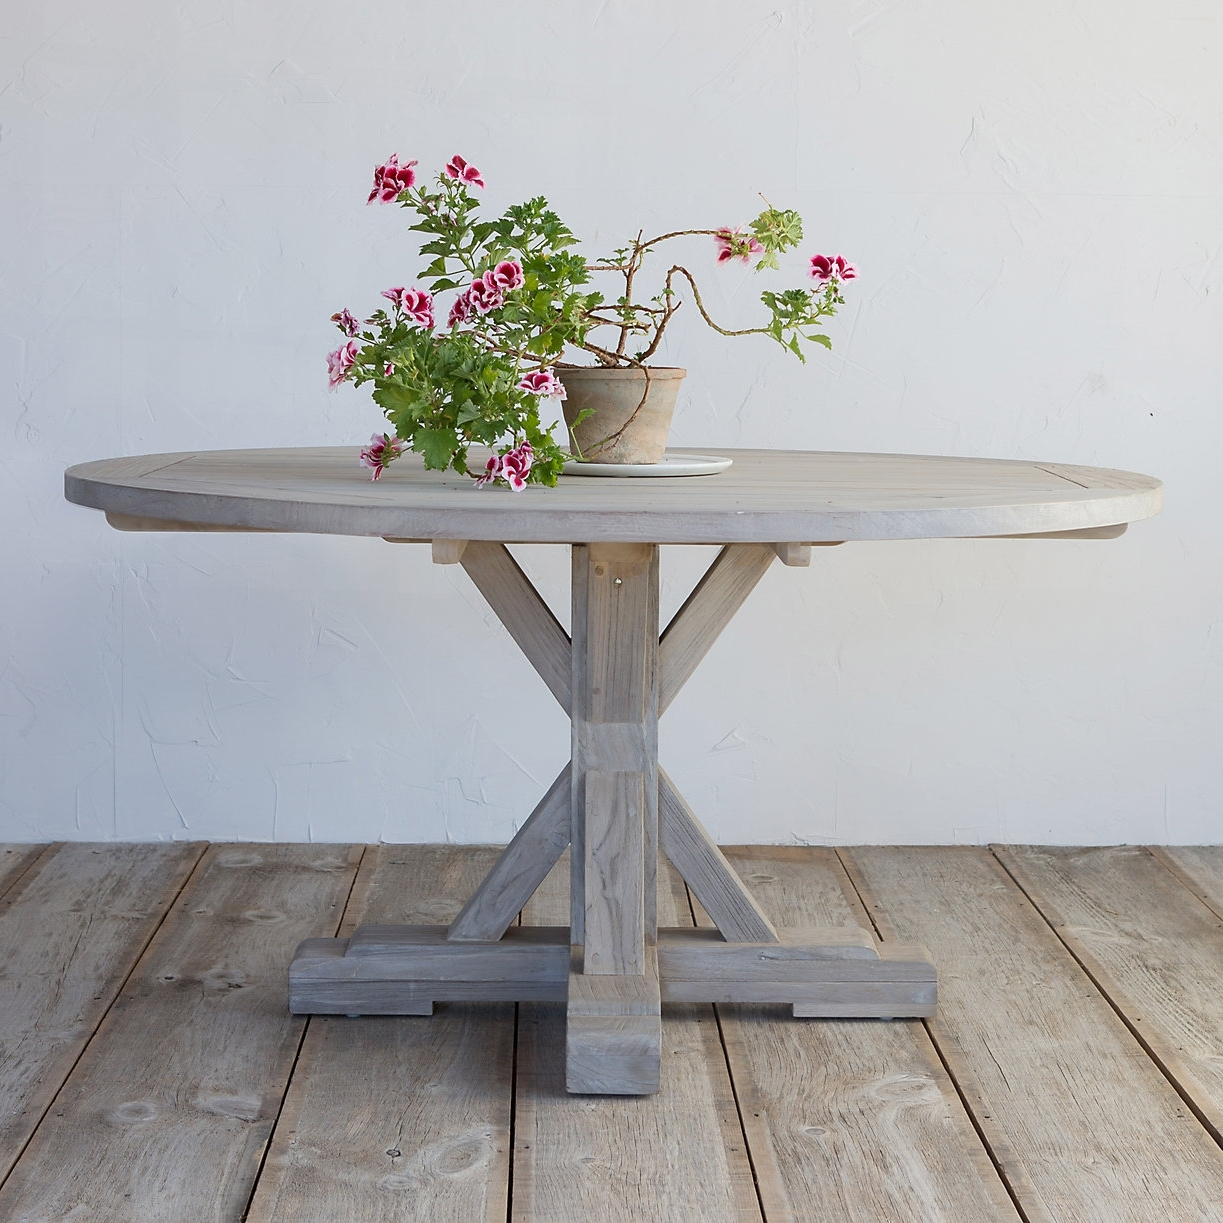 10 Easy Pieces: Round Wooden Dining Tables – Gardenista Within Most Recent Round Teak Dining Tables (View 11 of 25)